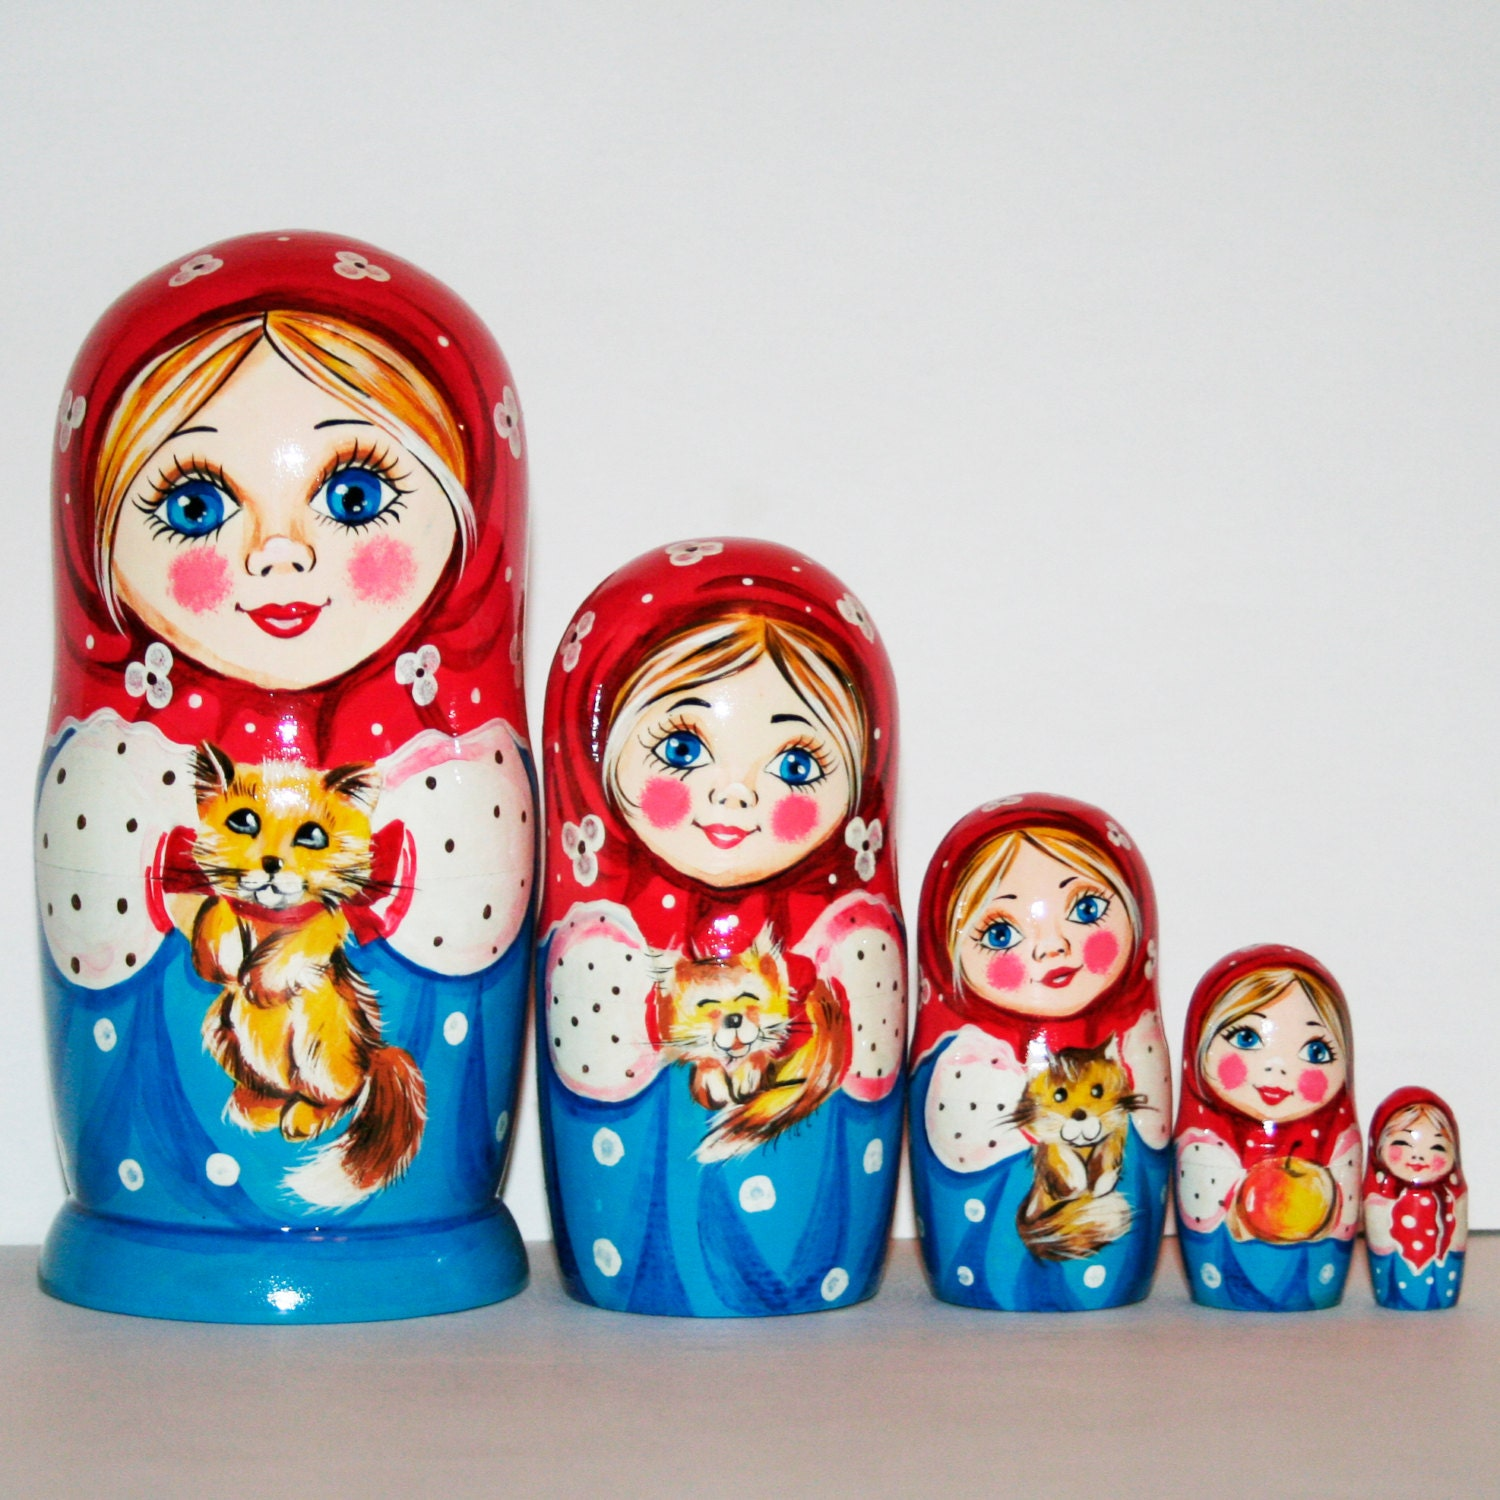 nesting doll with cats nesting dolls russian matryoshka